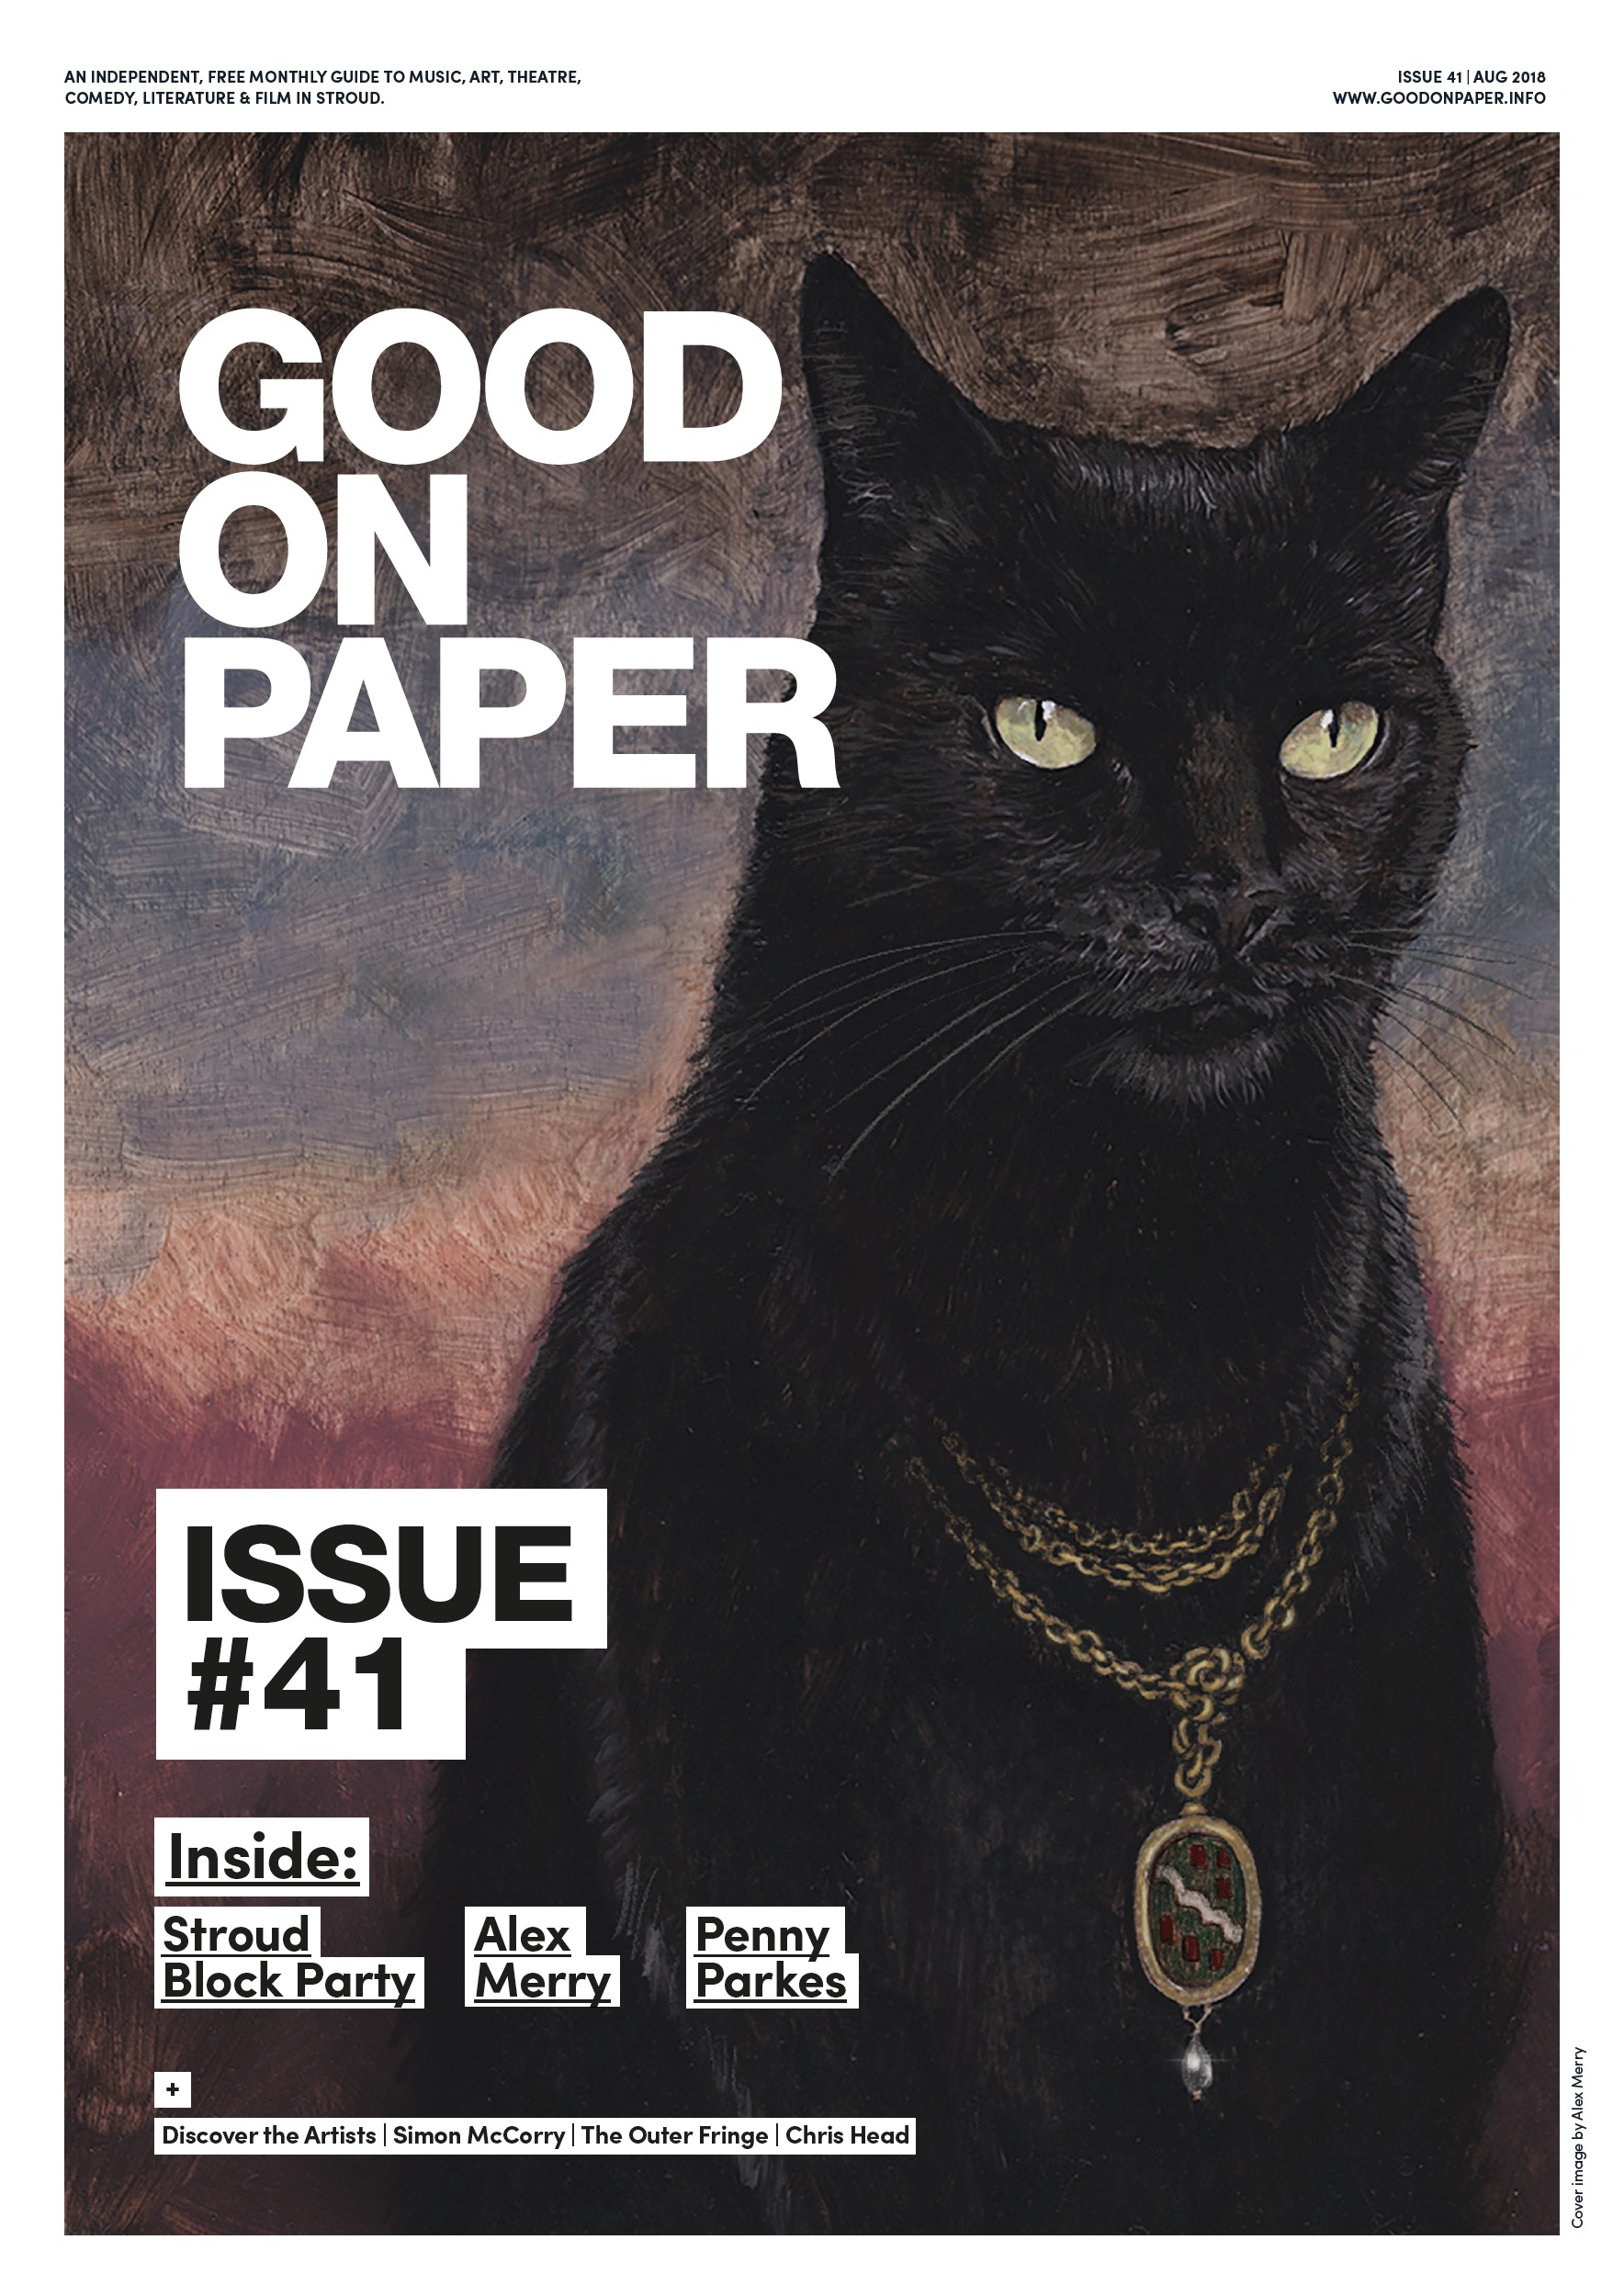 Issue 41